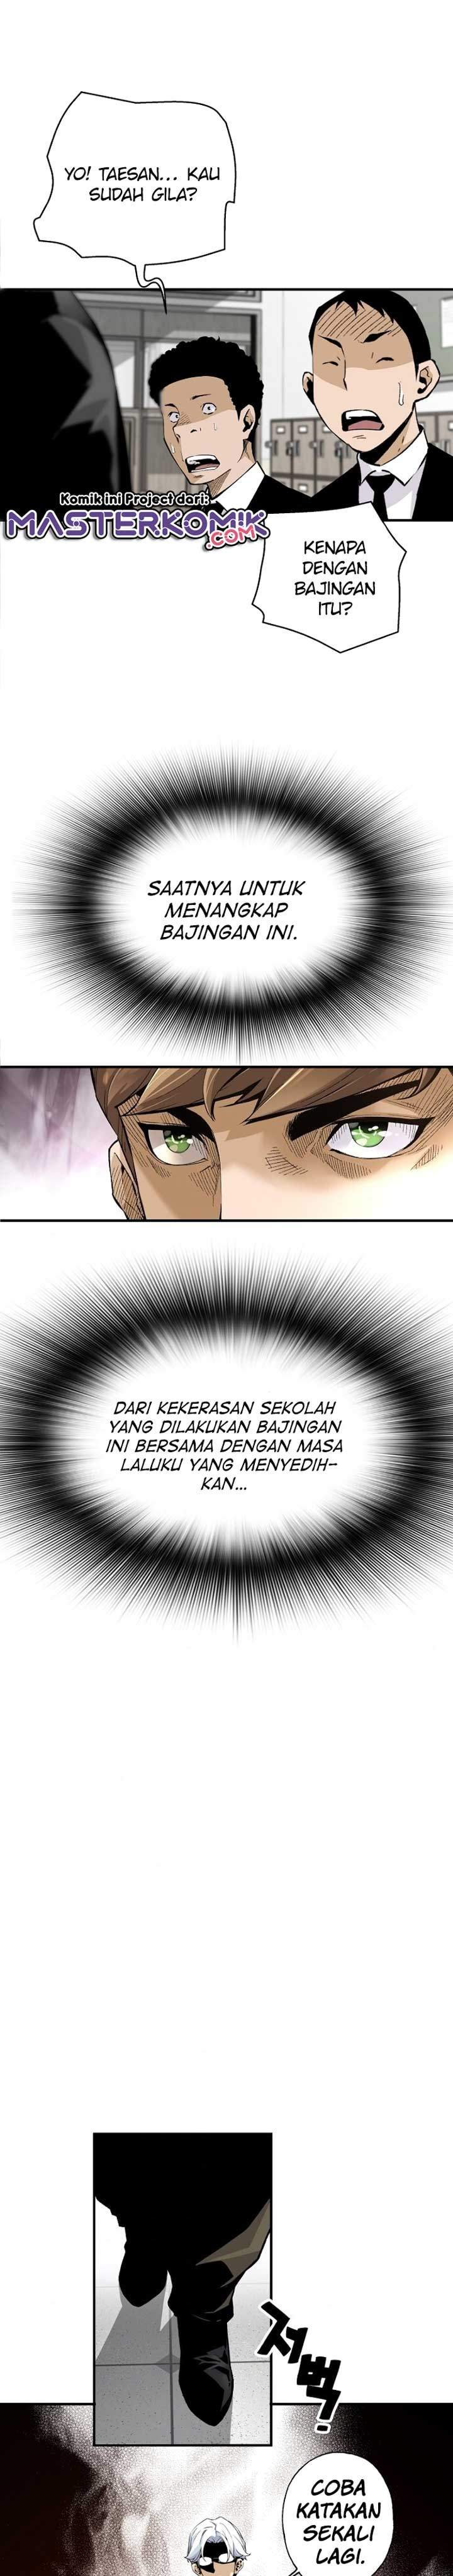 Return of the Legend Chapter 10